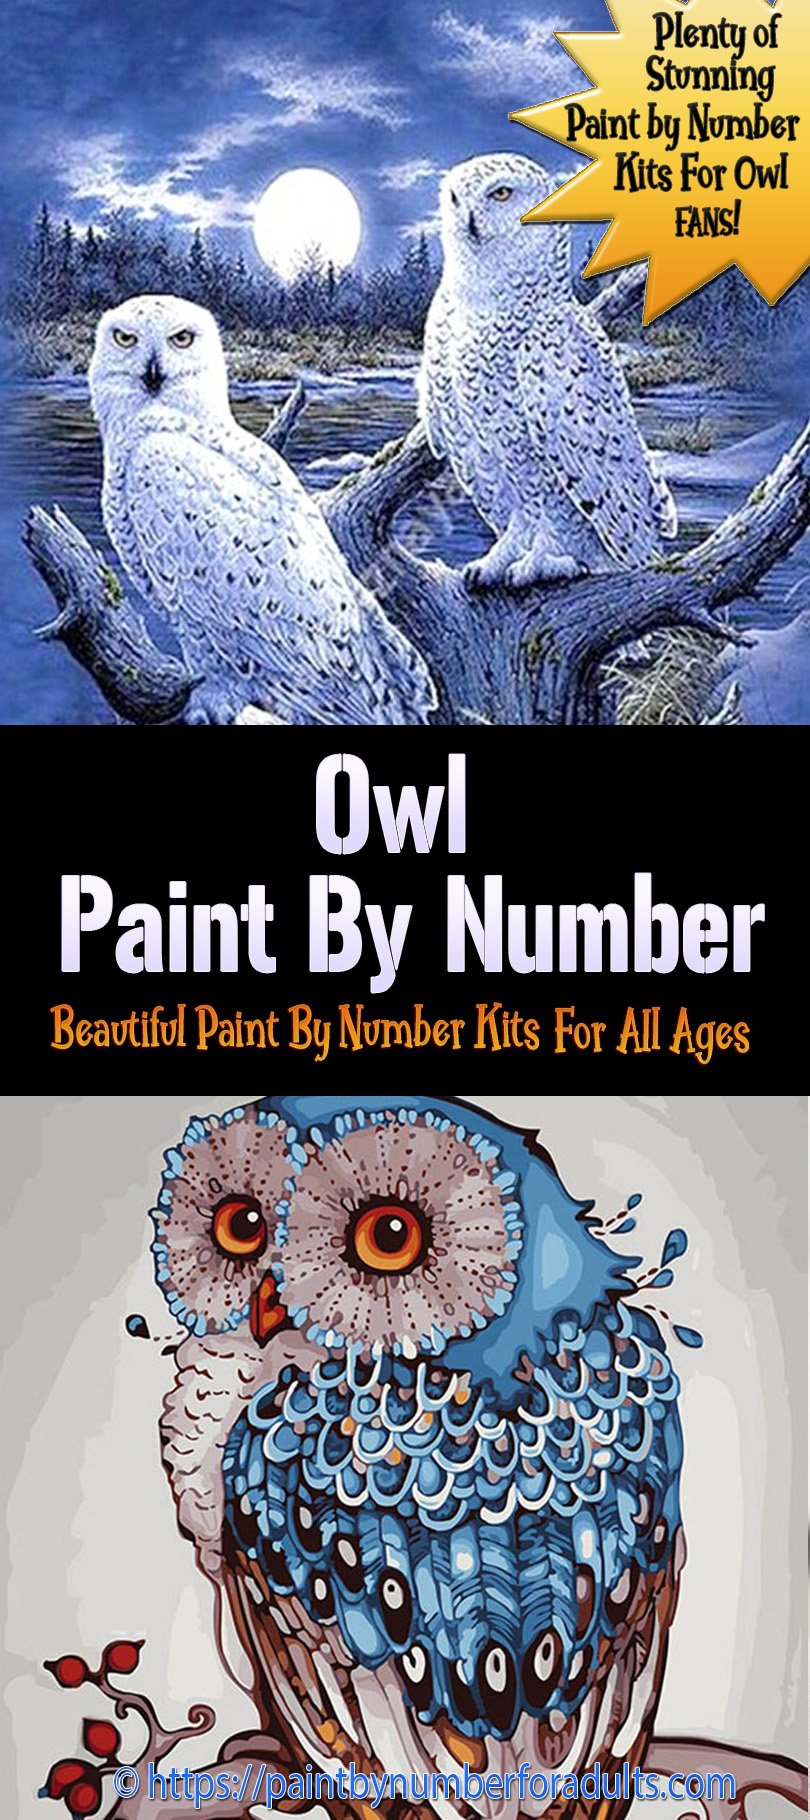 Paint By Number Kits of Owls